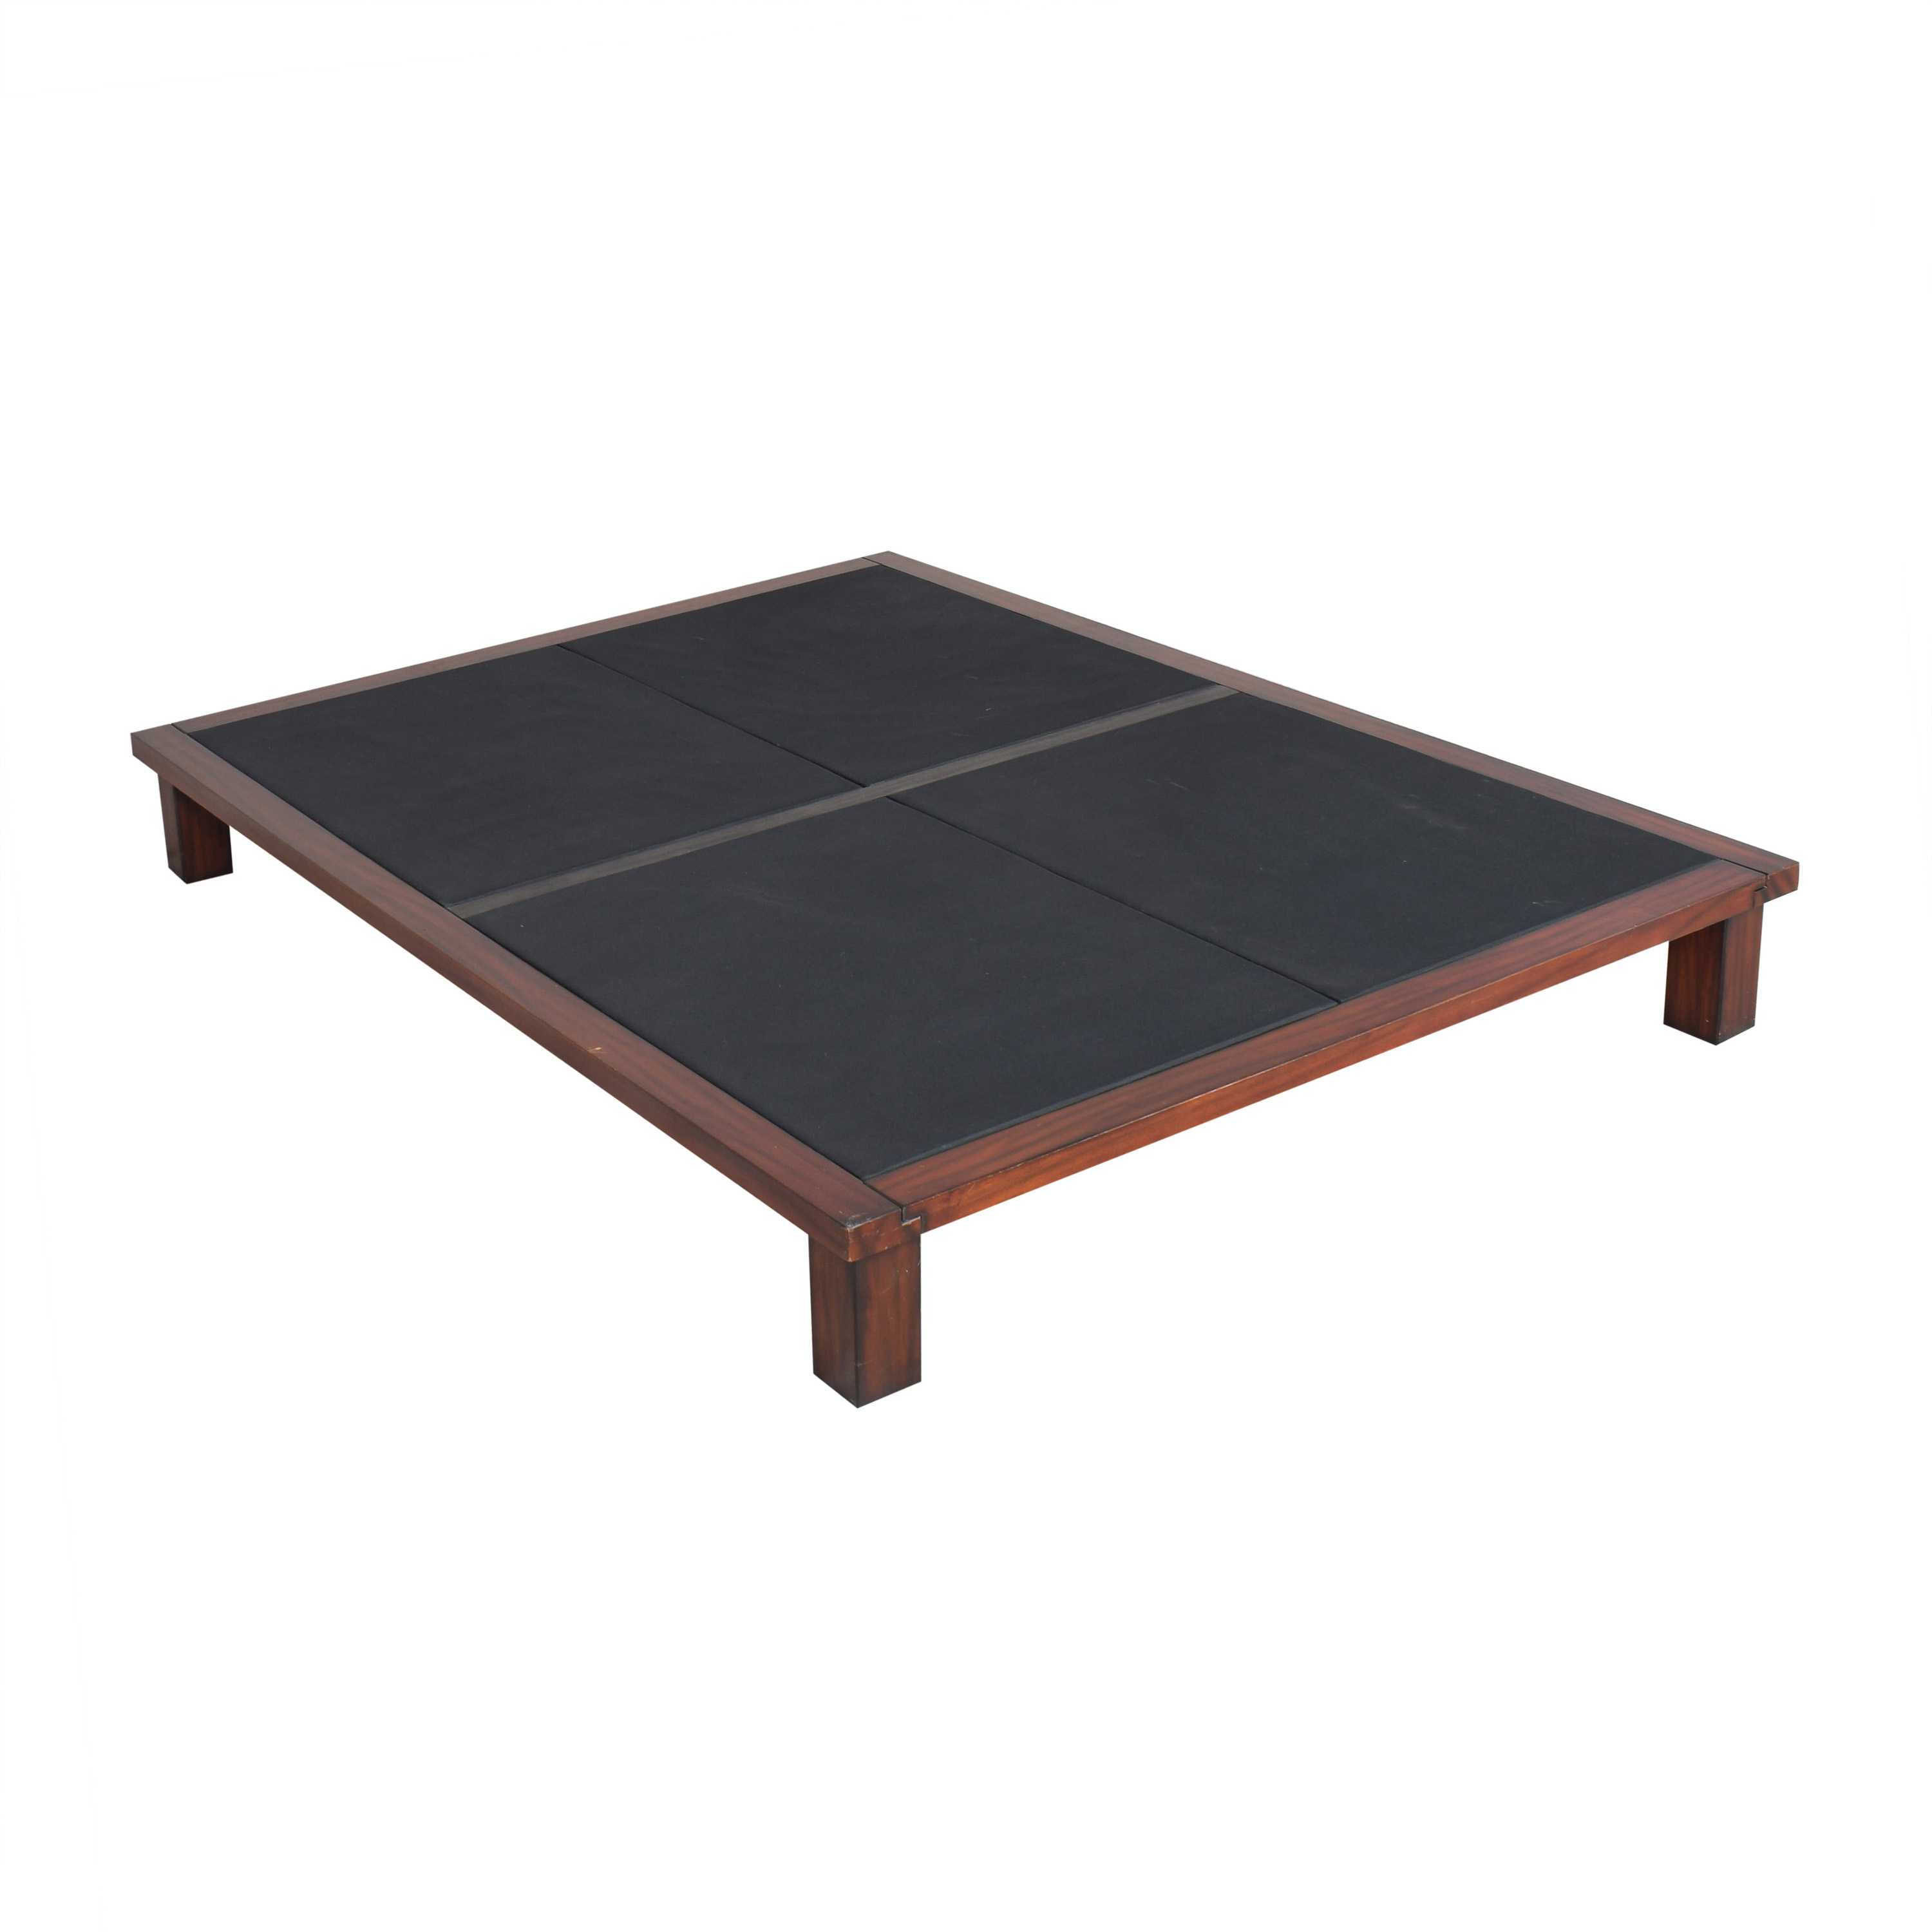 Charles P. Rogers Charles P. Rogers Madera Queen Platform Bed Beds